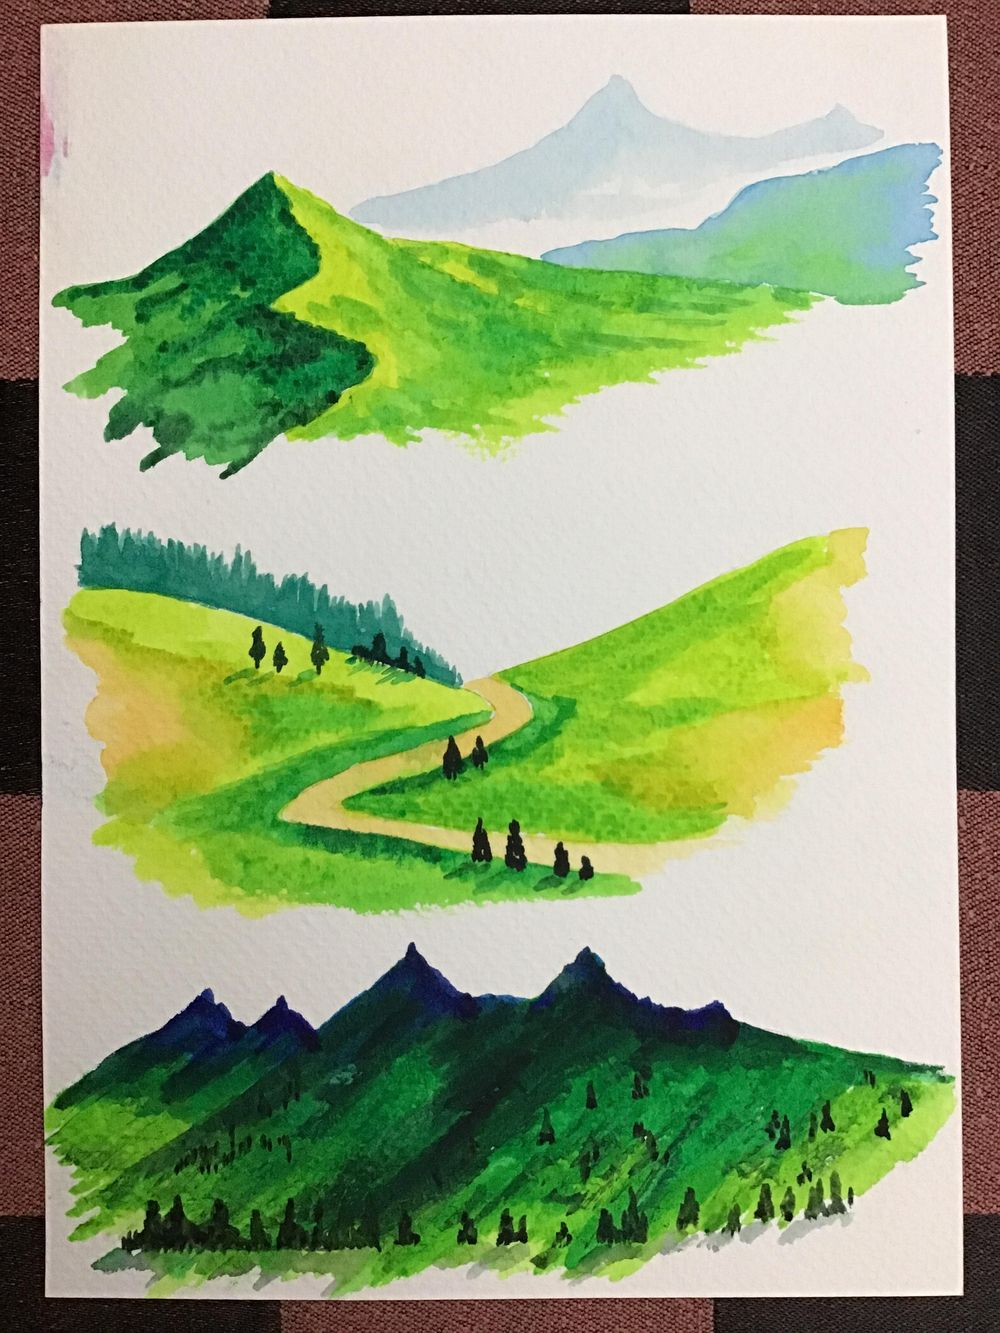 Amazing start to watercolour landscapes! - image 4 - student project